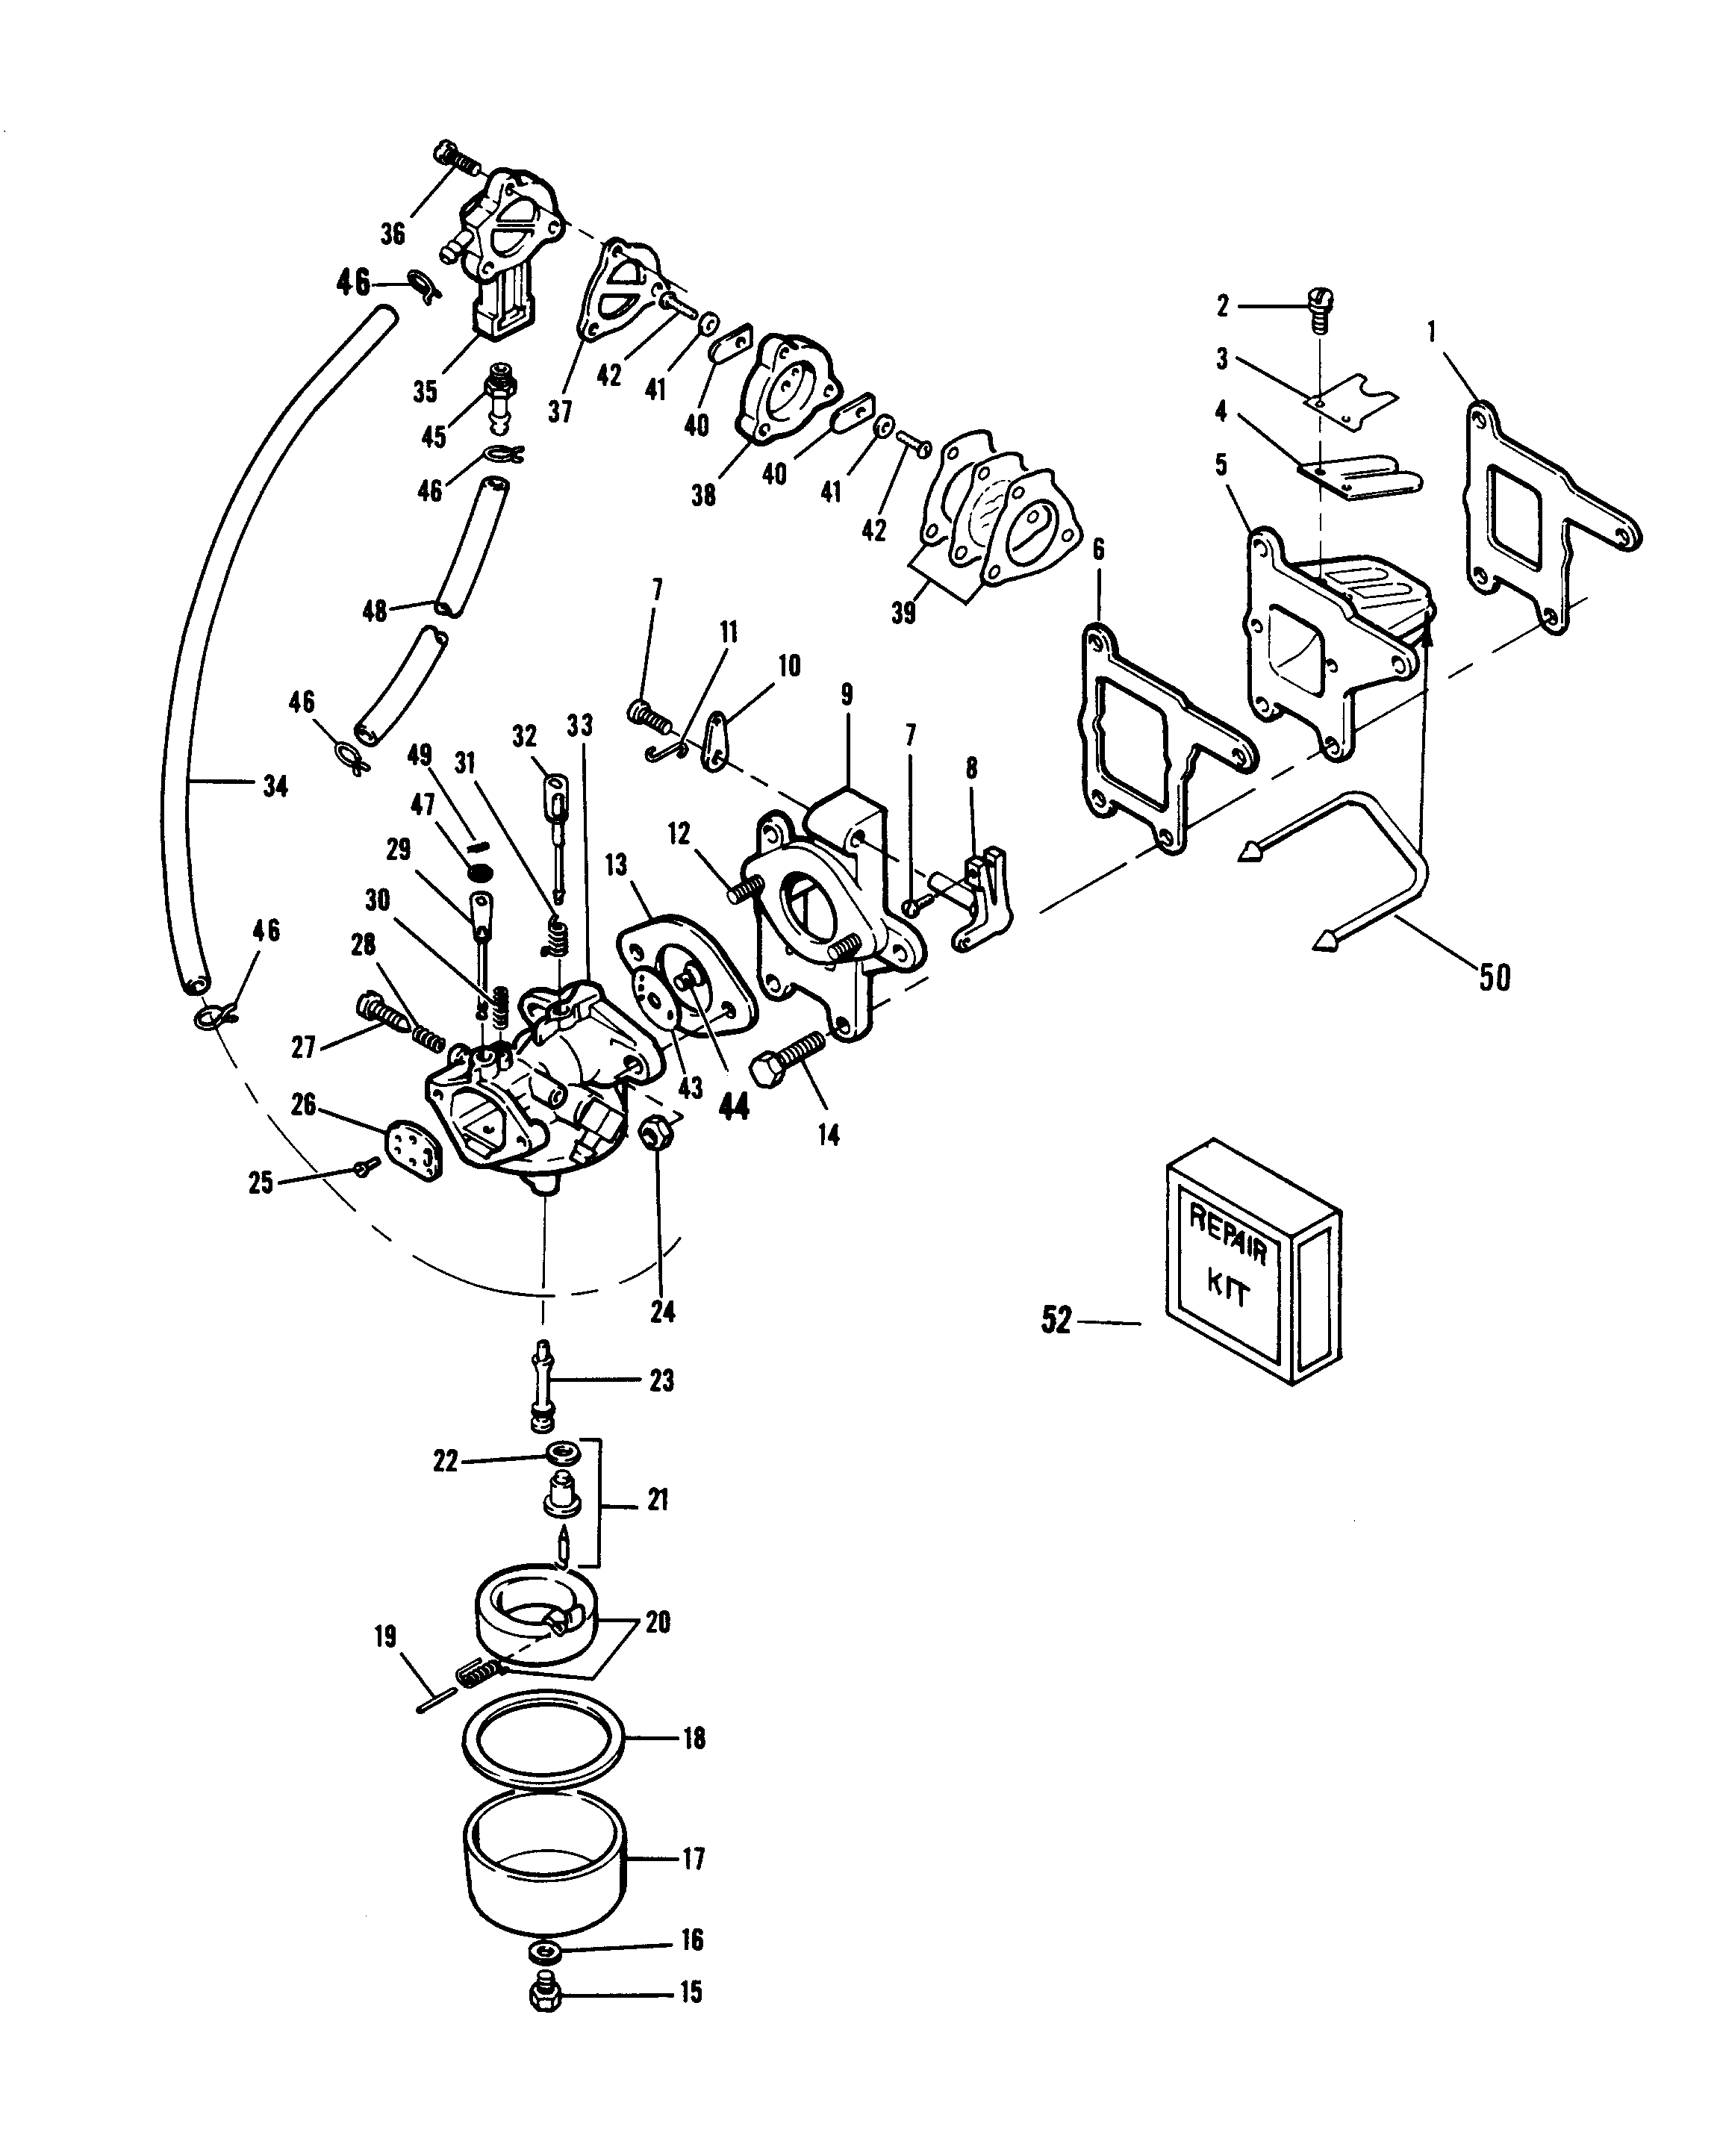 Engine Diagram 1991 Honda Accord Ex besides Discussion T744 ds553326 likewise Auto Repair The Radiator moreover 1997 Honda Crv Wiring Diagrams further 93 Jeep Cherokee Wiring Diagram. on 1997 honda accord cooling system diagram